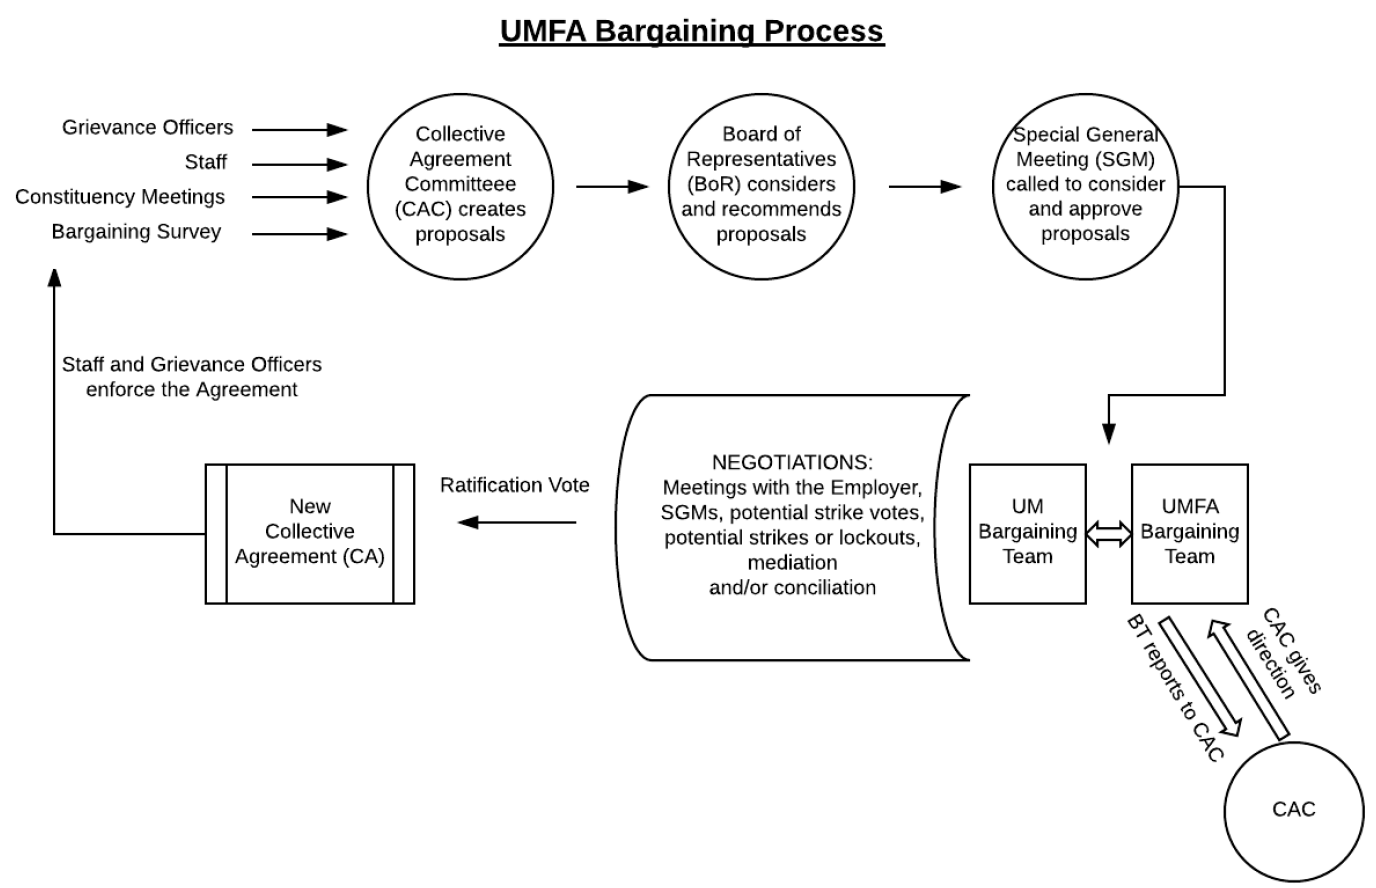 Bargaining process flow chart